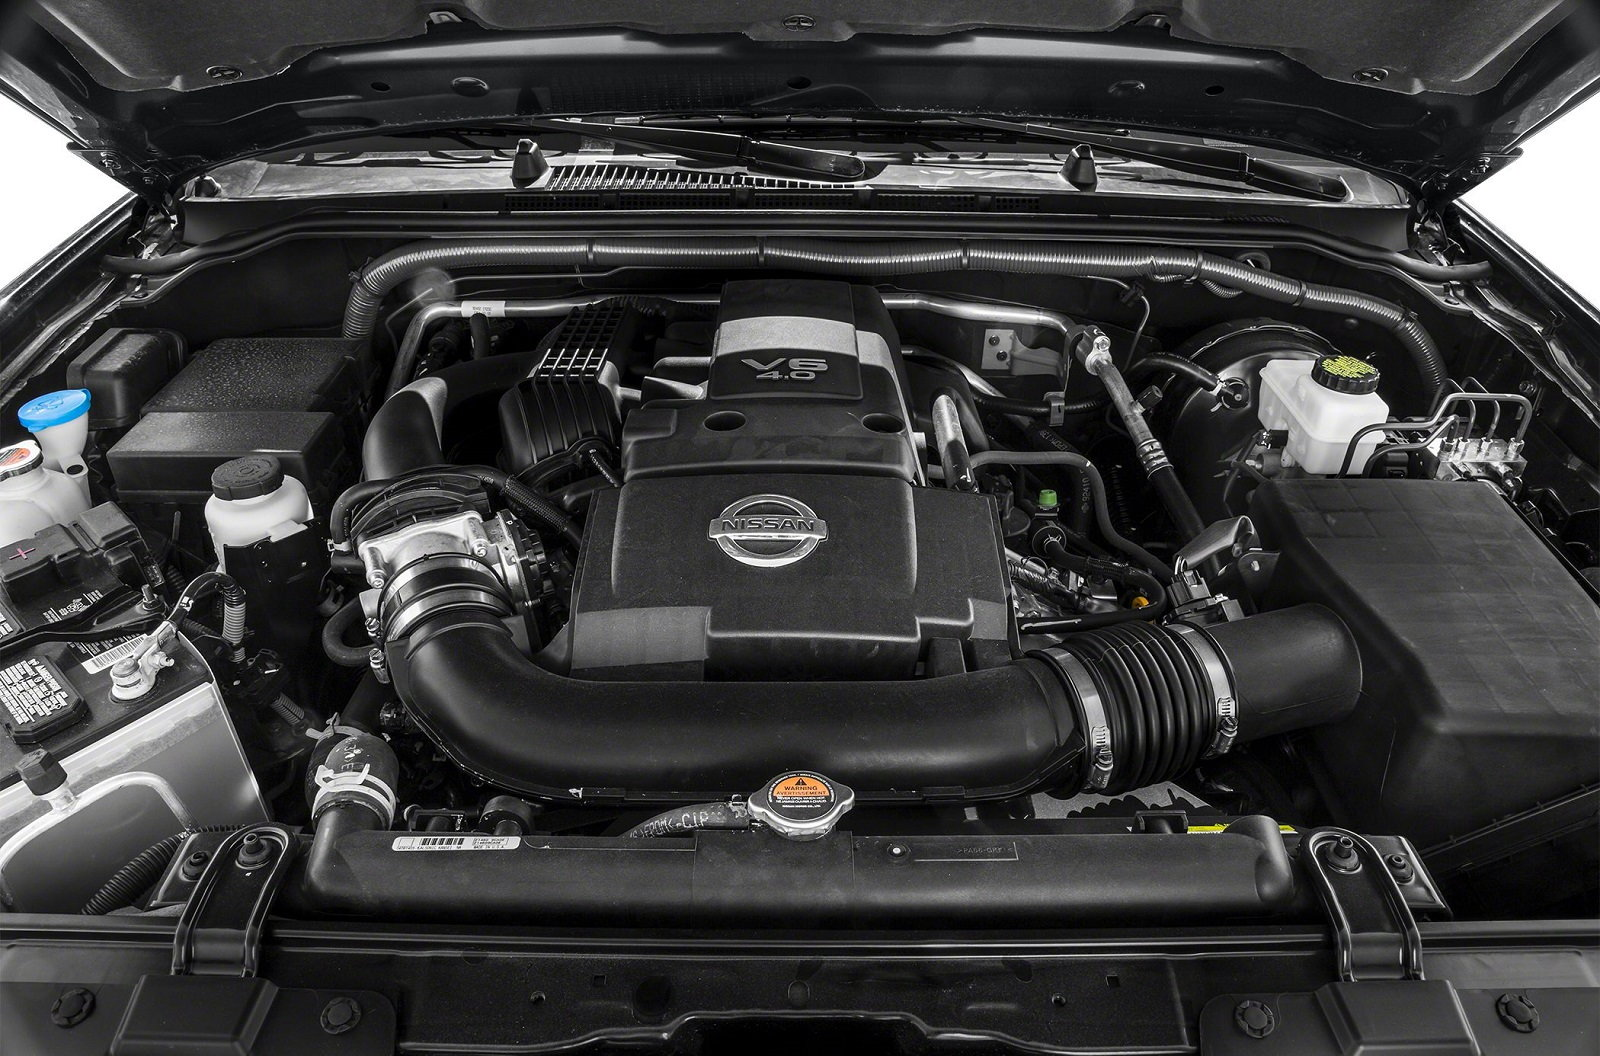 Nissan Frontier Engine Bay